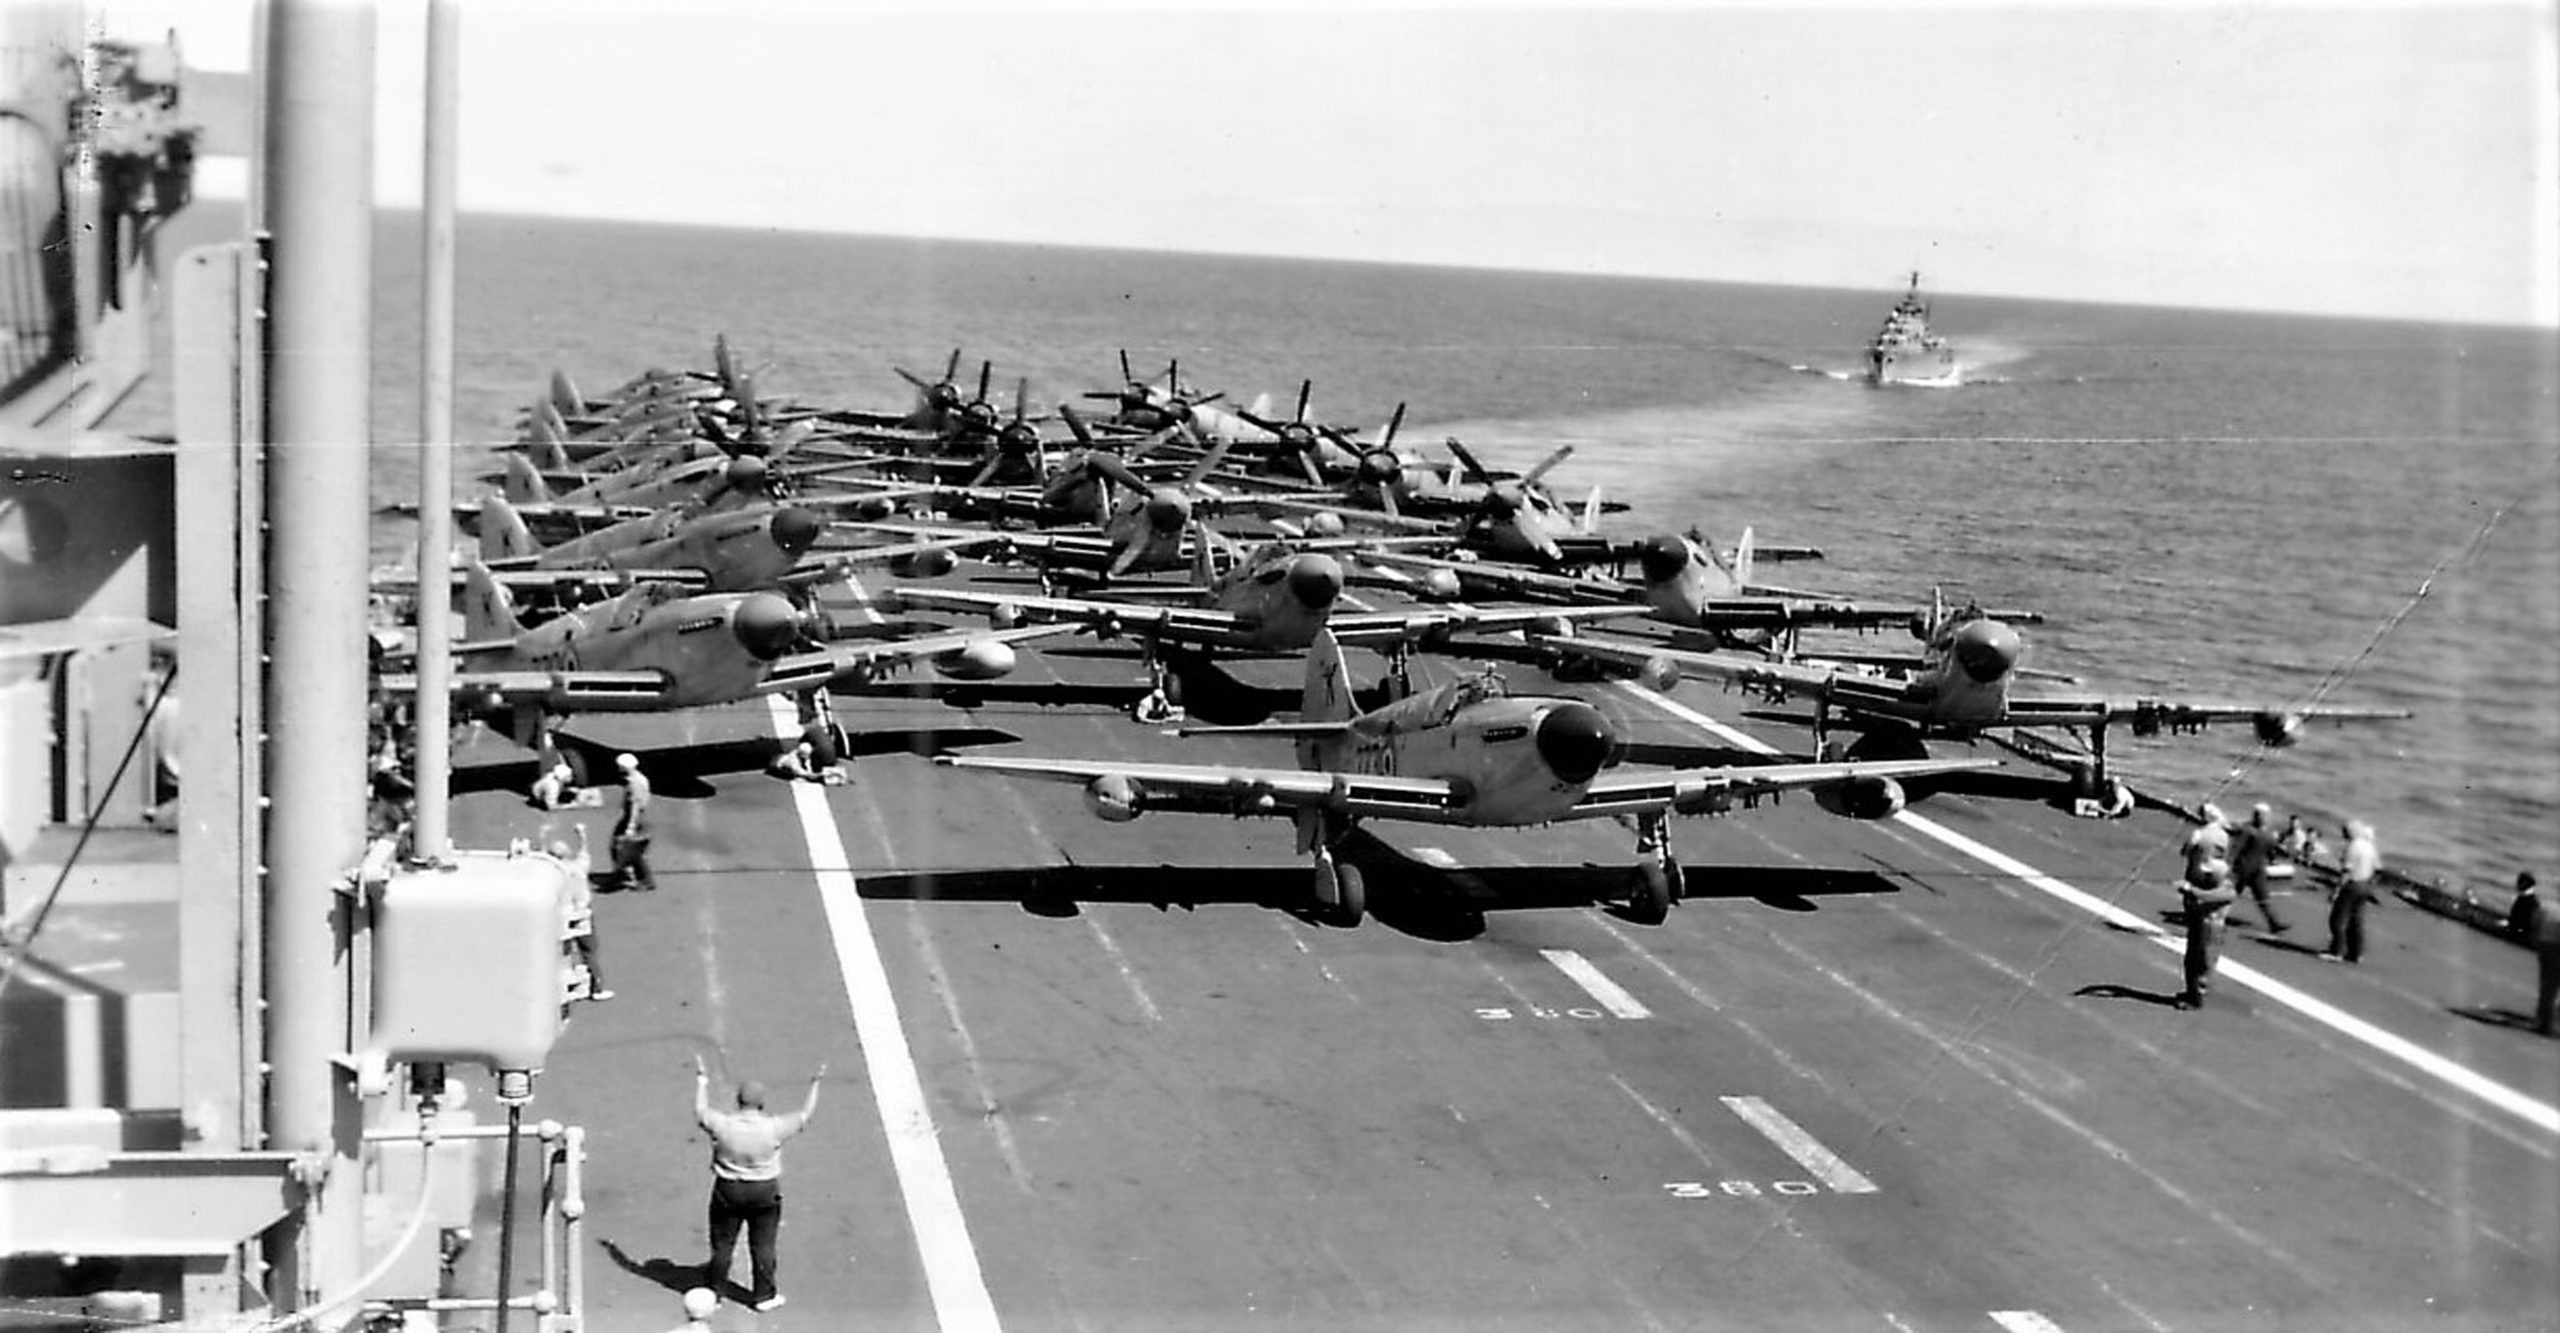 Fireflies on the deck of HMAS Sydney